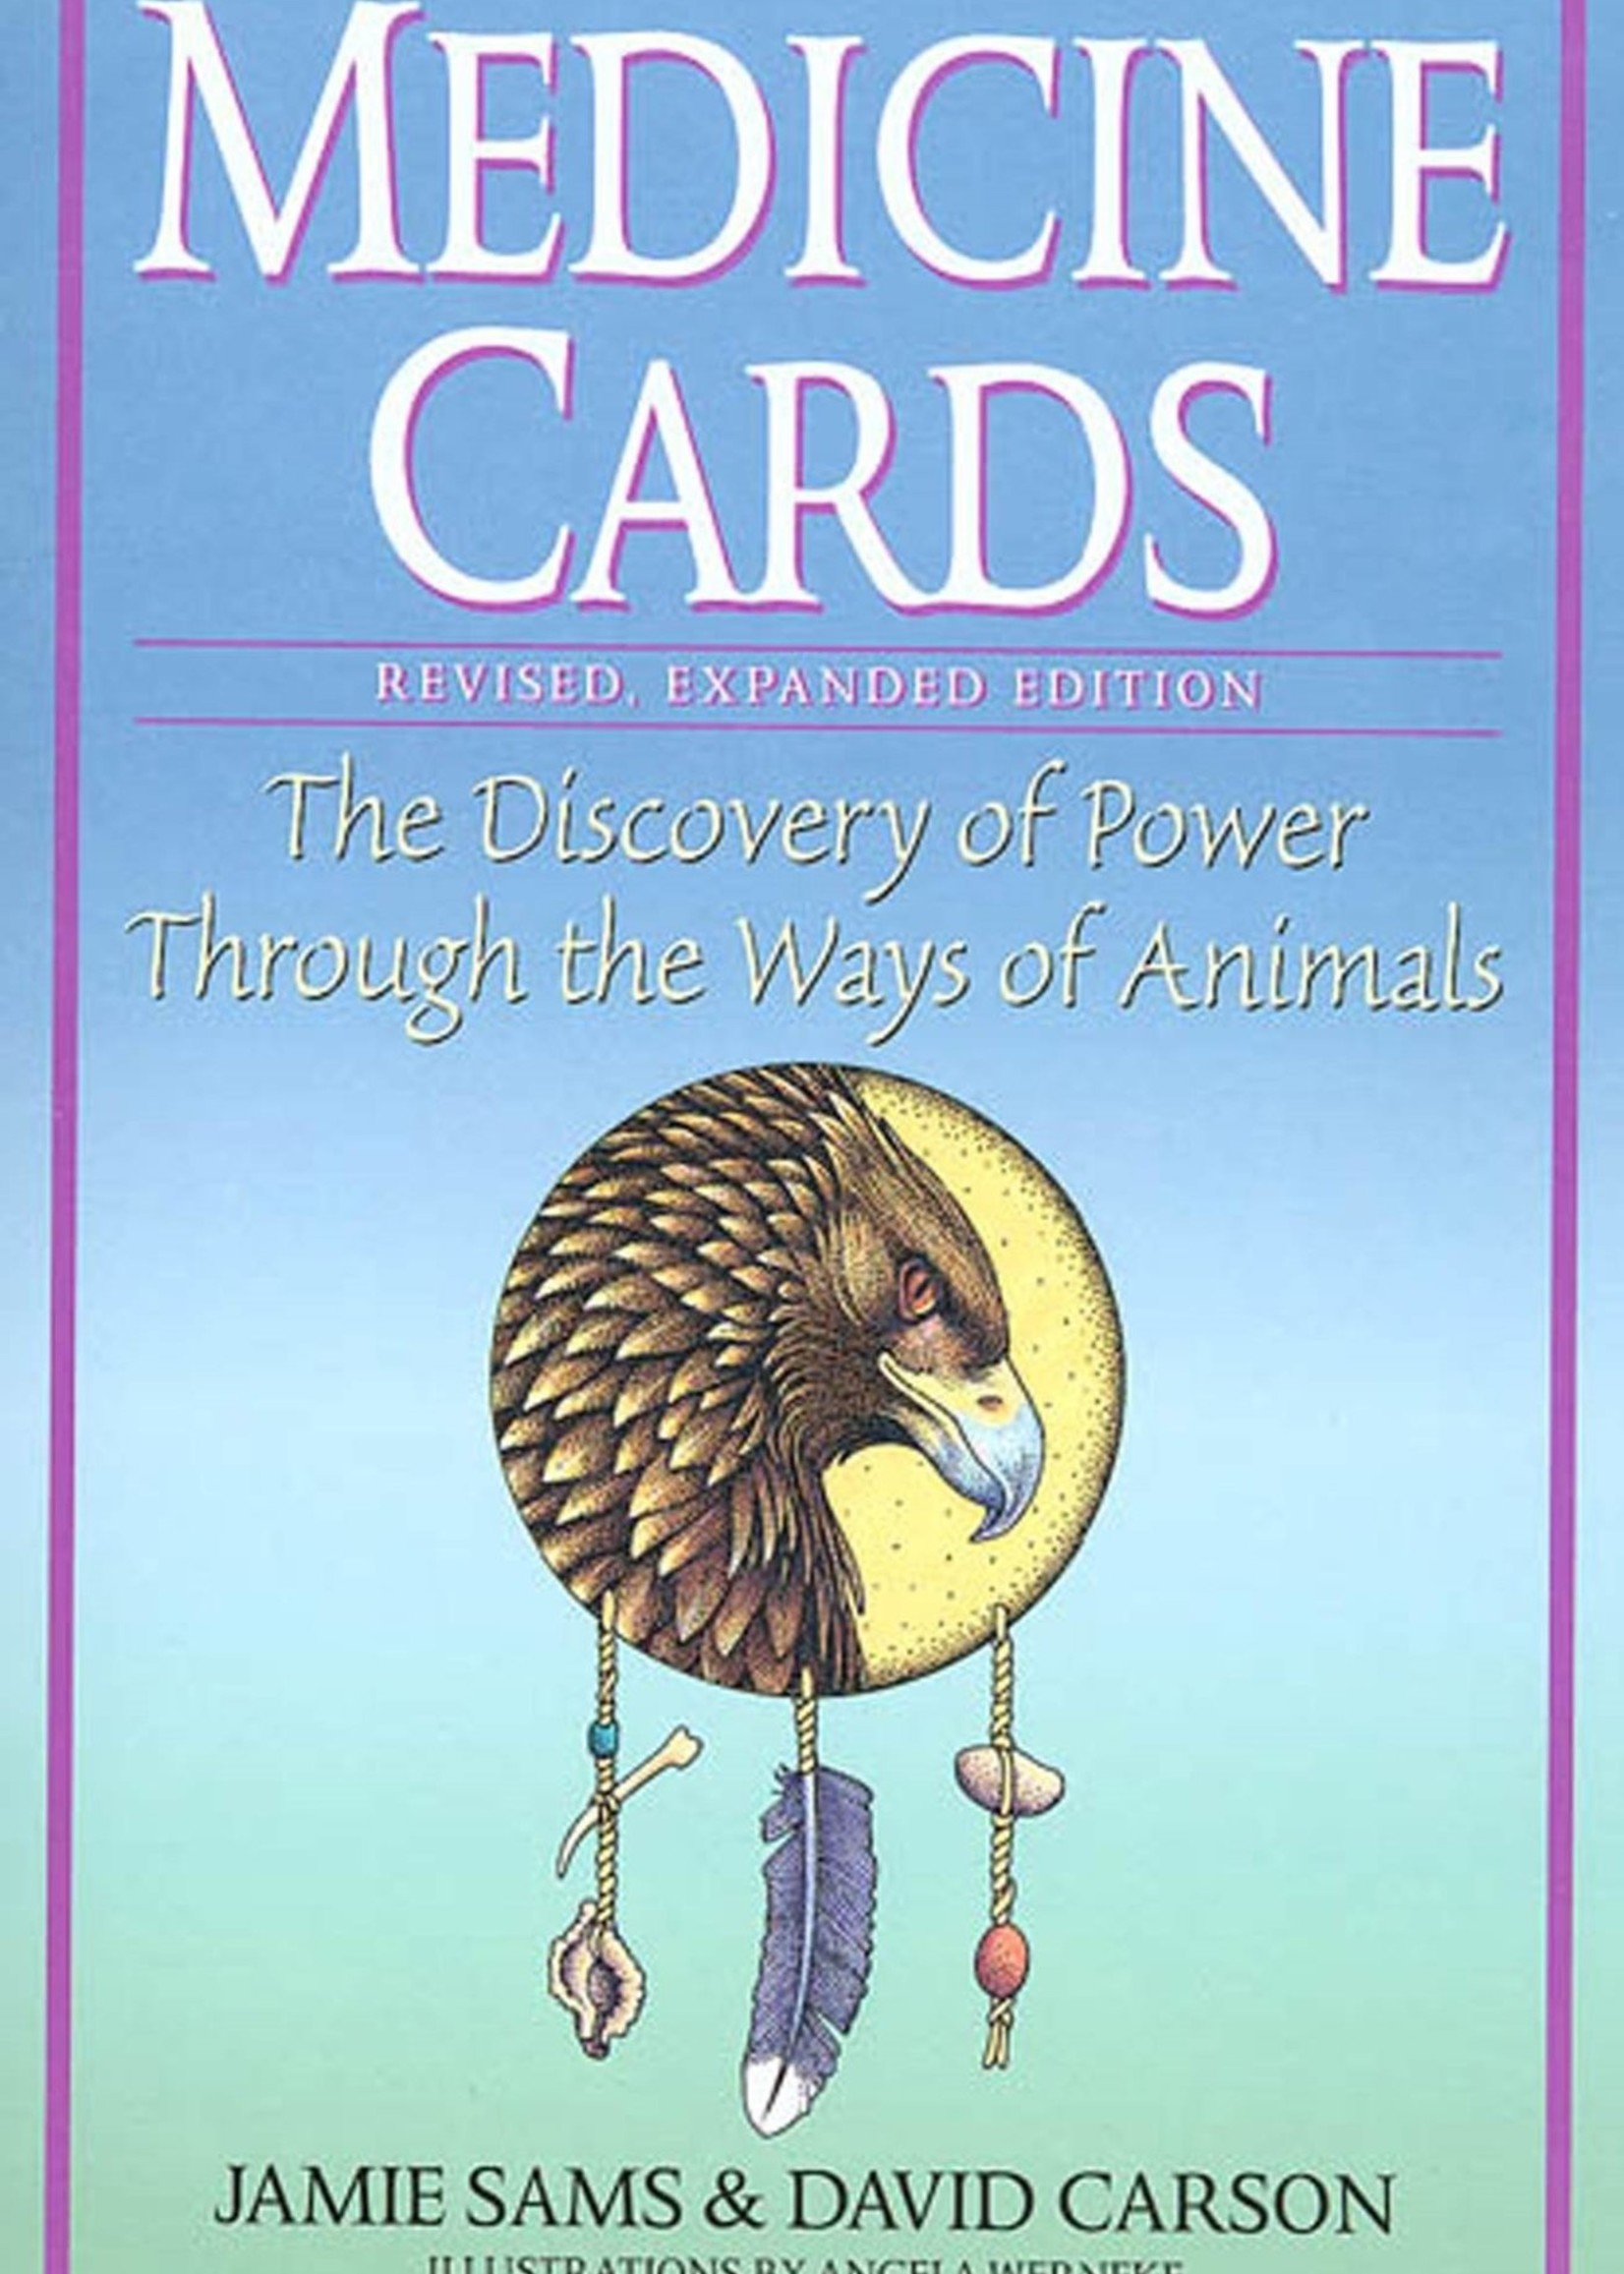 MEDICINE CARDS: The Discovery Of Power Through The Way Of The Animals